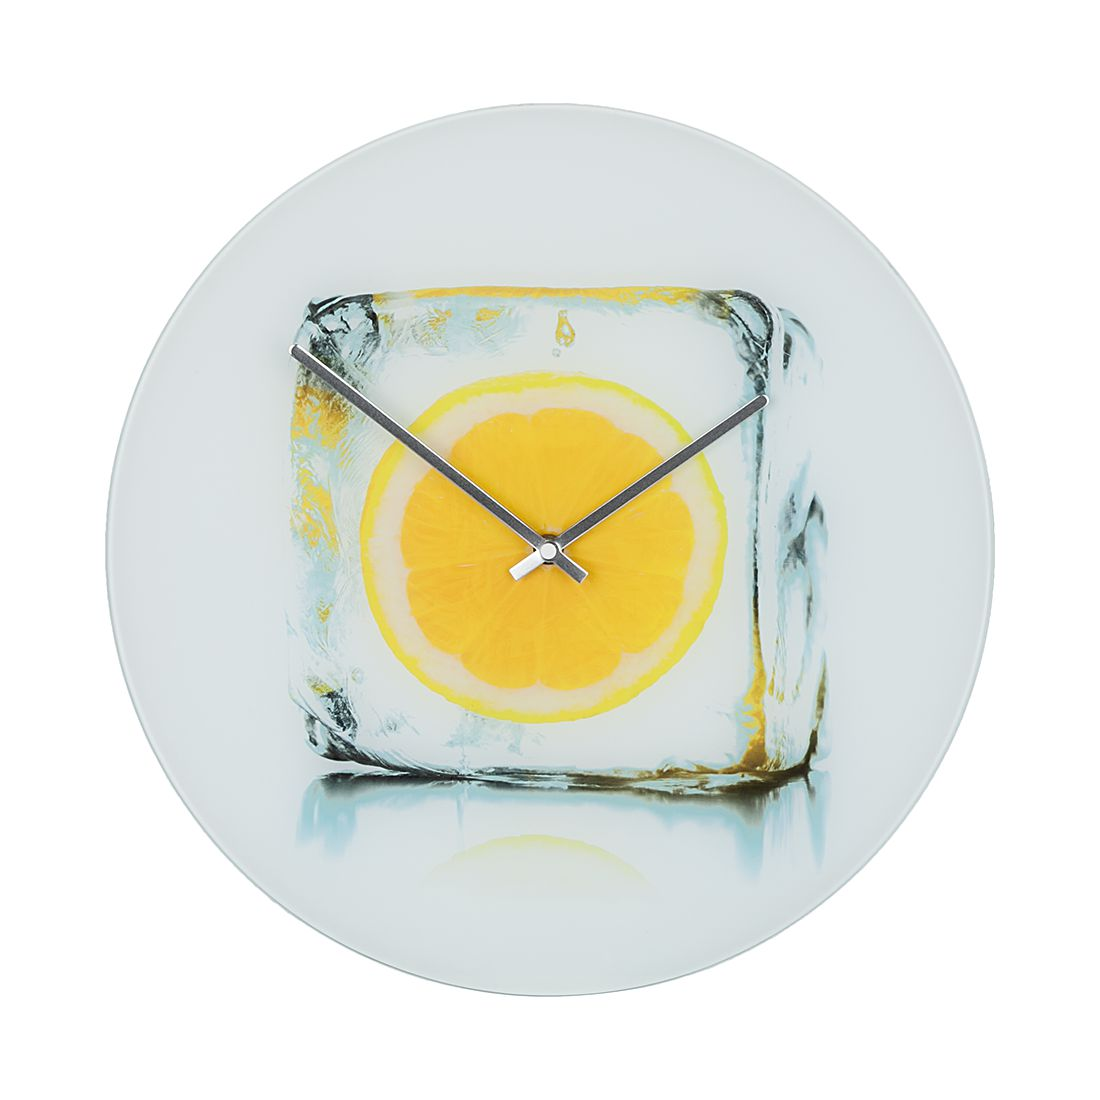 Image of Orologio Icy Lemon, Pro Art